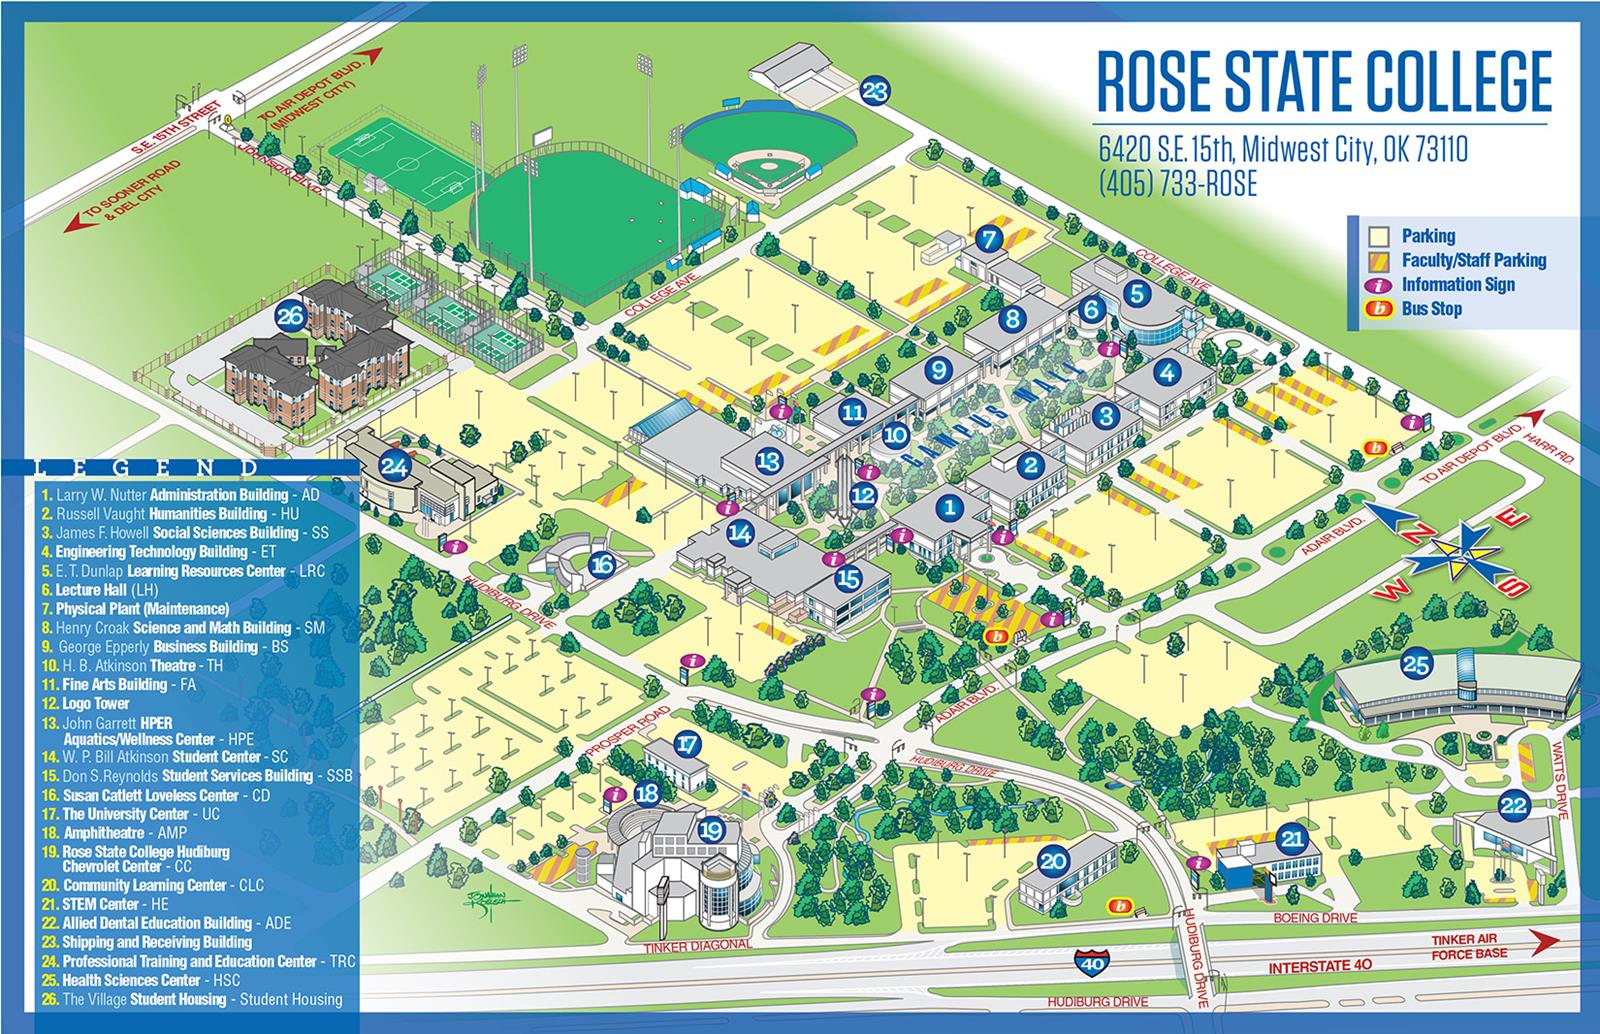 Rose State Campus Map - Rose State College Athletics on sacramento city college map, city college of san francisco, city college virtual tour, south city campus map, city college nyc, pcc map, cuny city college map, city college san diego ca, grove city college map, city college graduate programs, riverside city college map, city college accreditation, san diego city map, city tech map, sd city college map, la city college map, san jose city college map, long beach city college map, city college events,